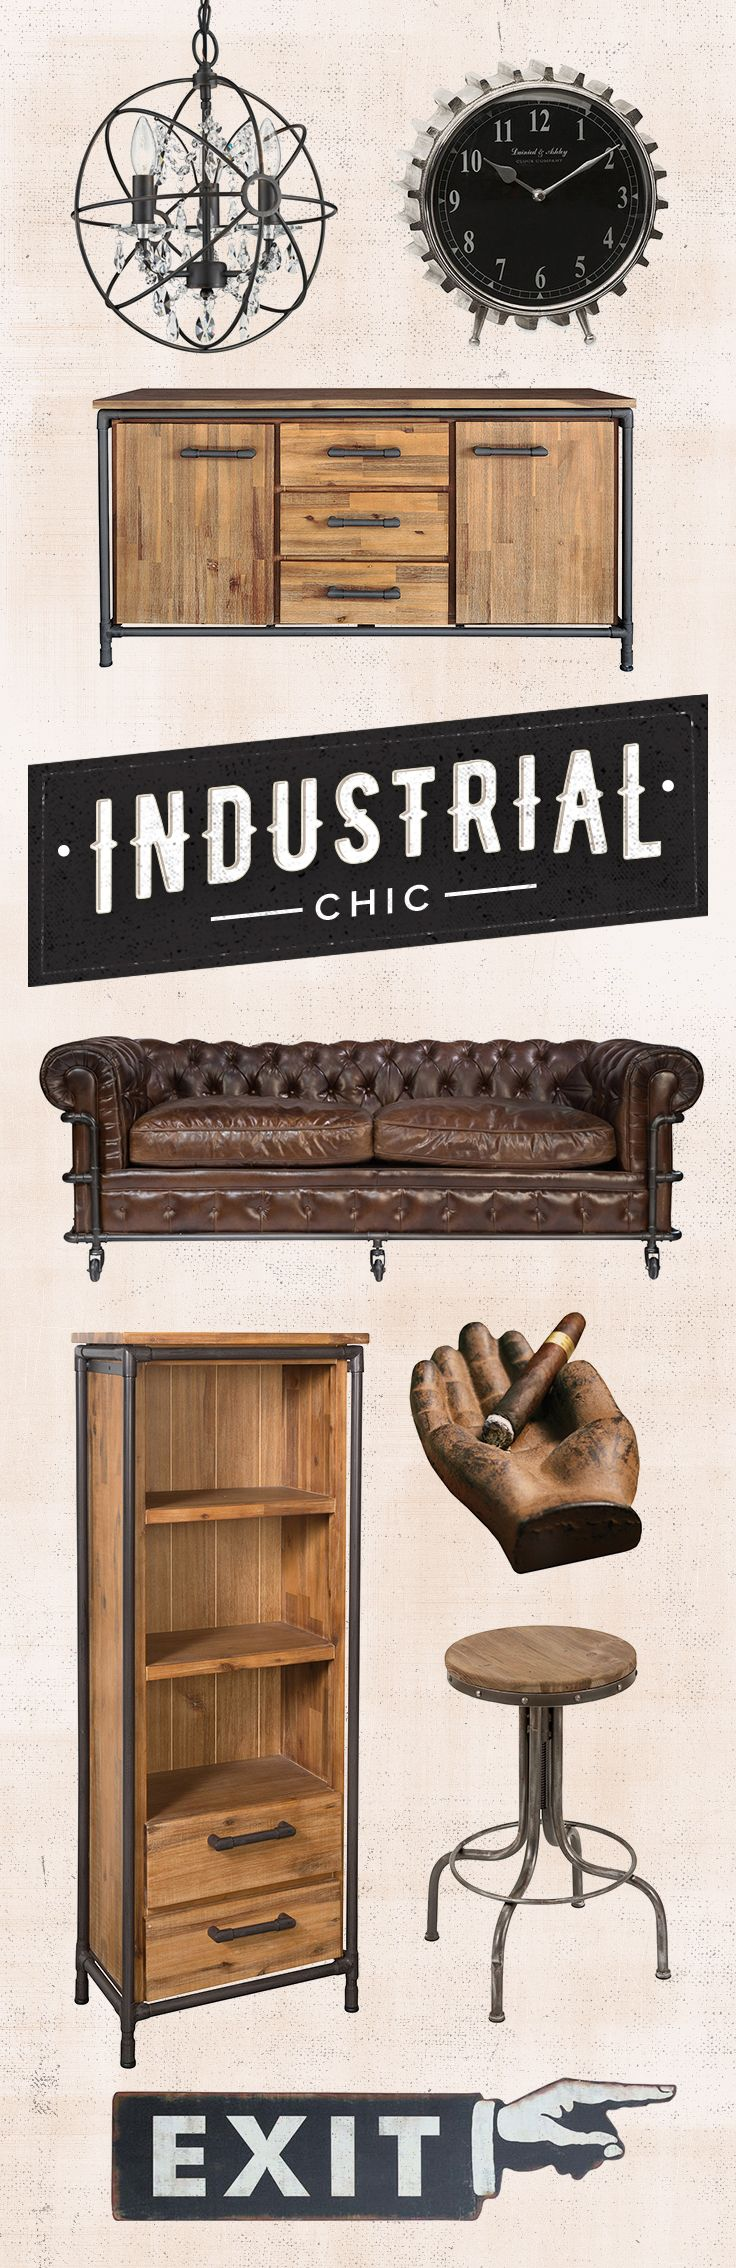 There's always something new to discover. Shop Industrial Chic style and more at Dot & Bo and explore our hand-picked, curated furniture collections. Shop Now at dotandbo.com!